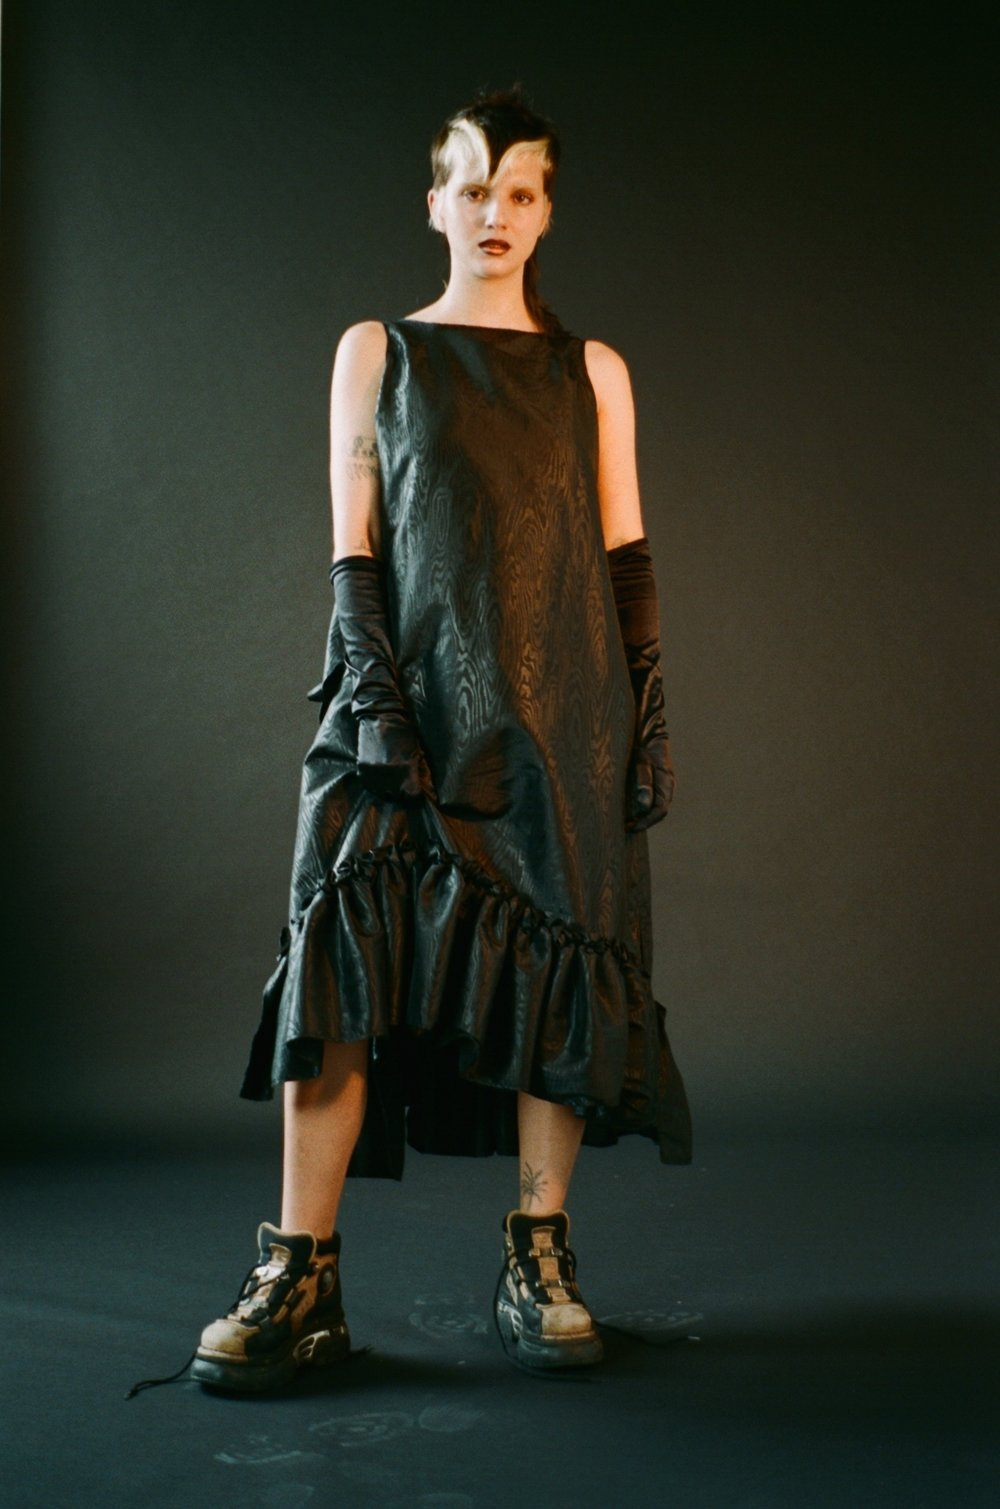 dress William Dill - Russell, gloves STYLIST'S OWN, shoes Buffalo